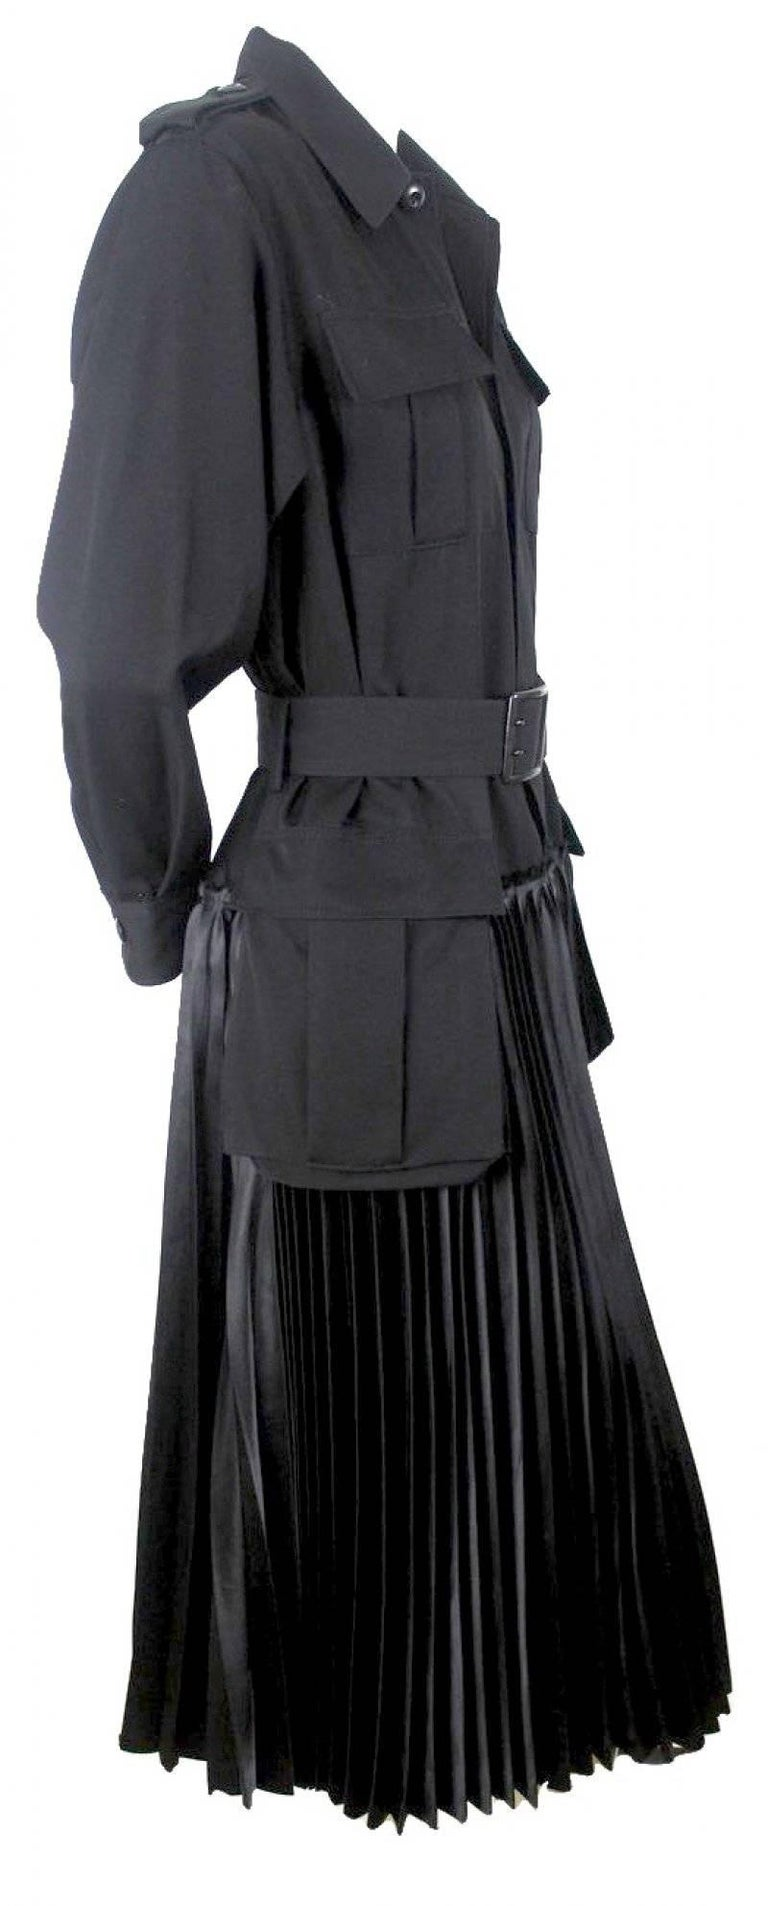 Junya Watanabe 2006 Collection Military Dress For Sale 1